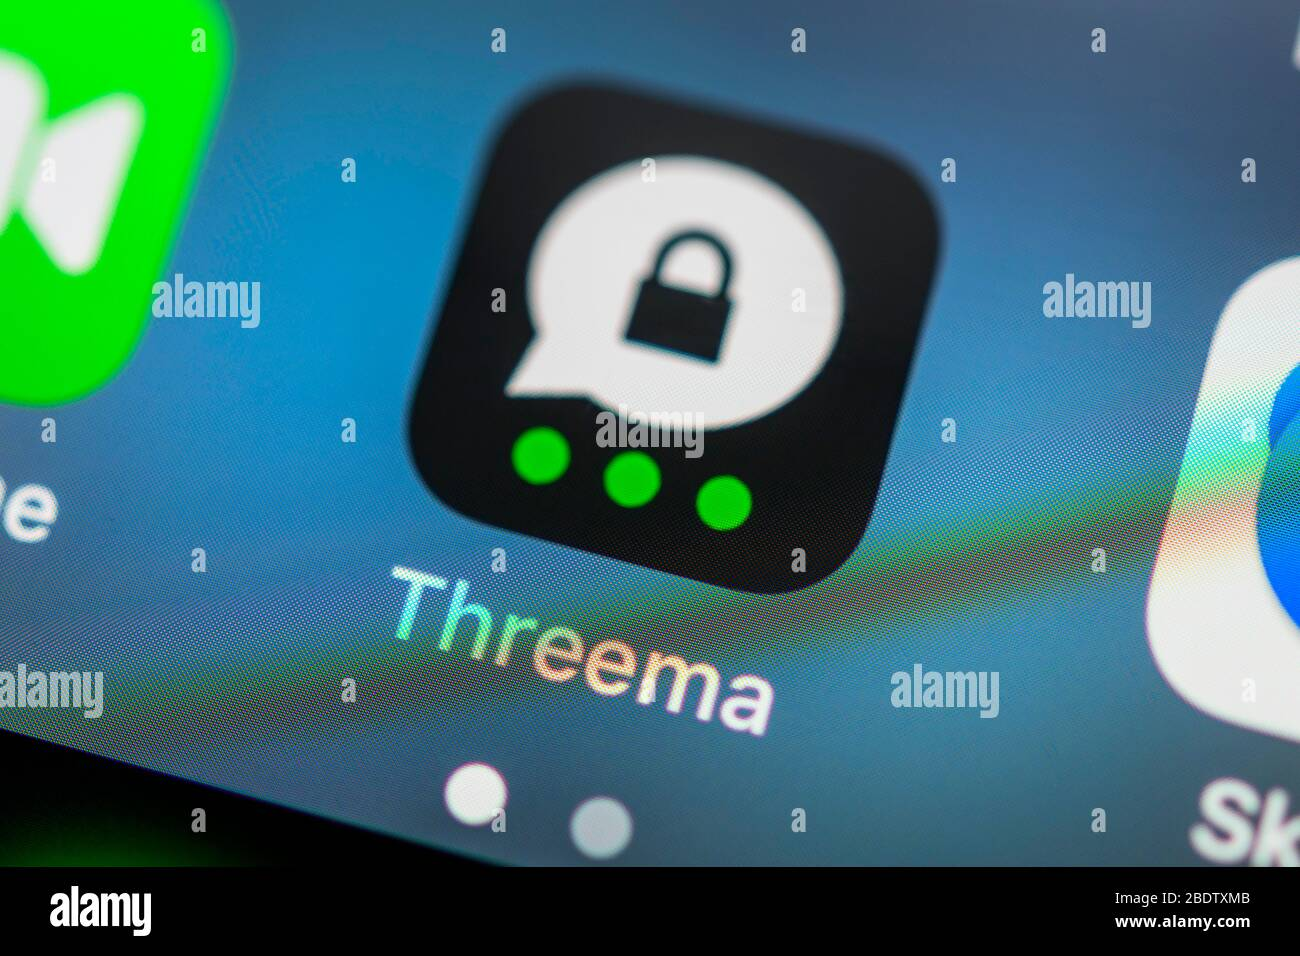 Threema App, Secure encrypted messenger service, app icon, display on screen of mobile phone, smartphone, detail, full screen Stock Photo